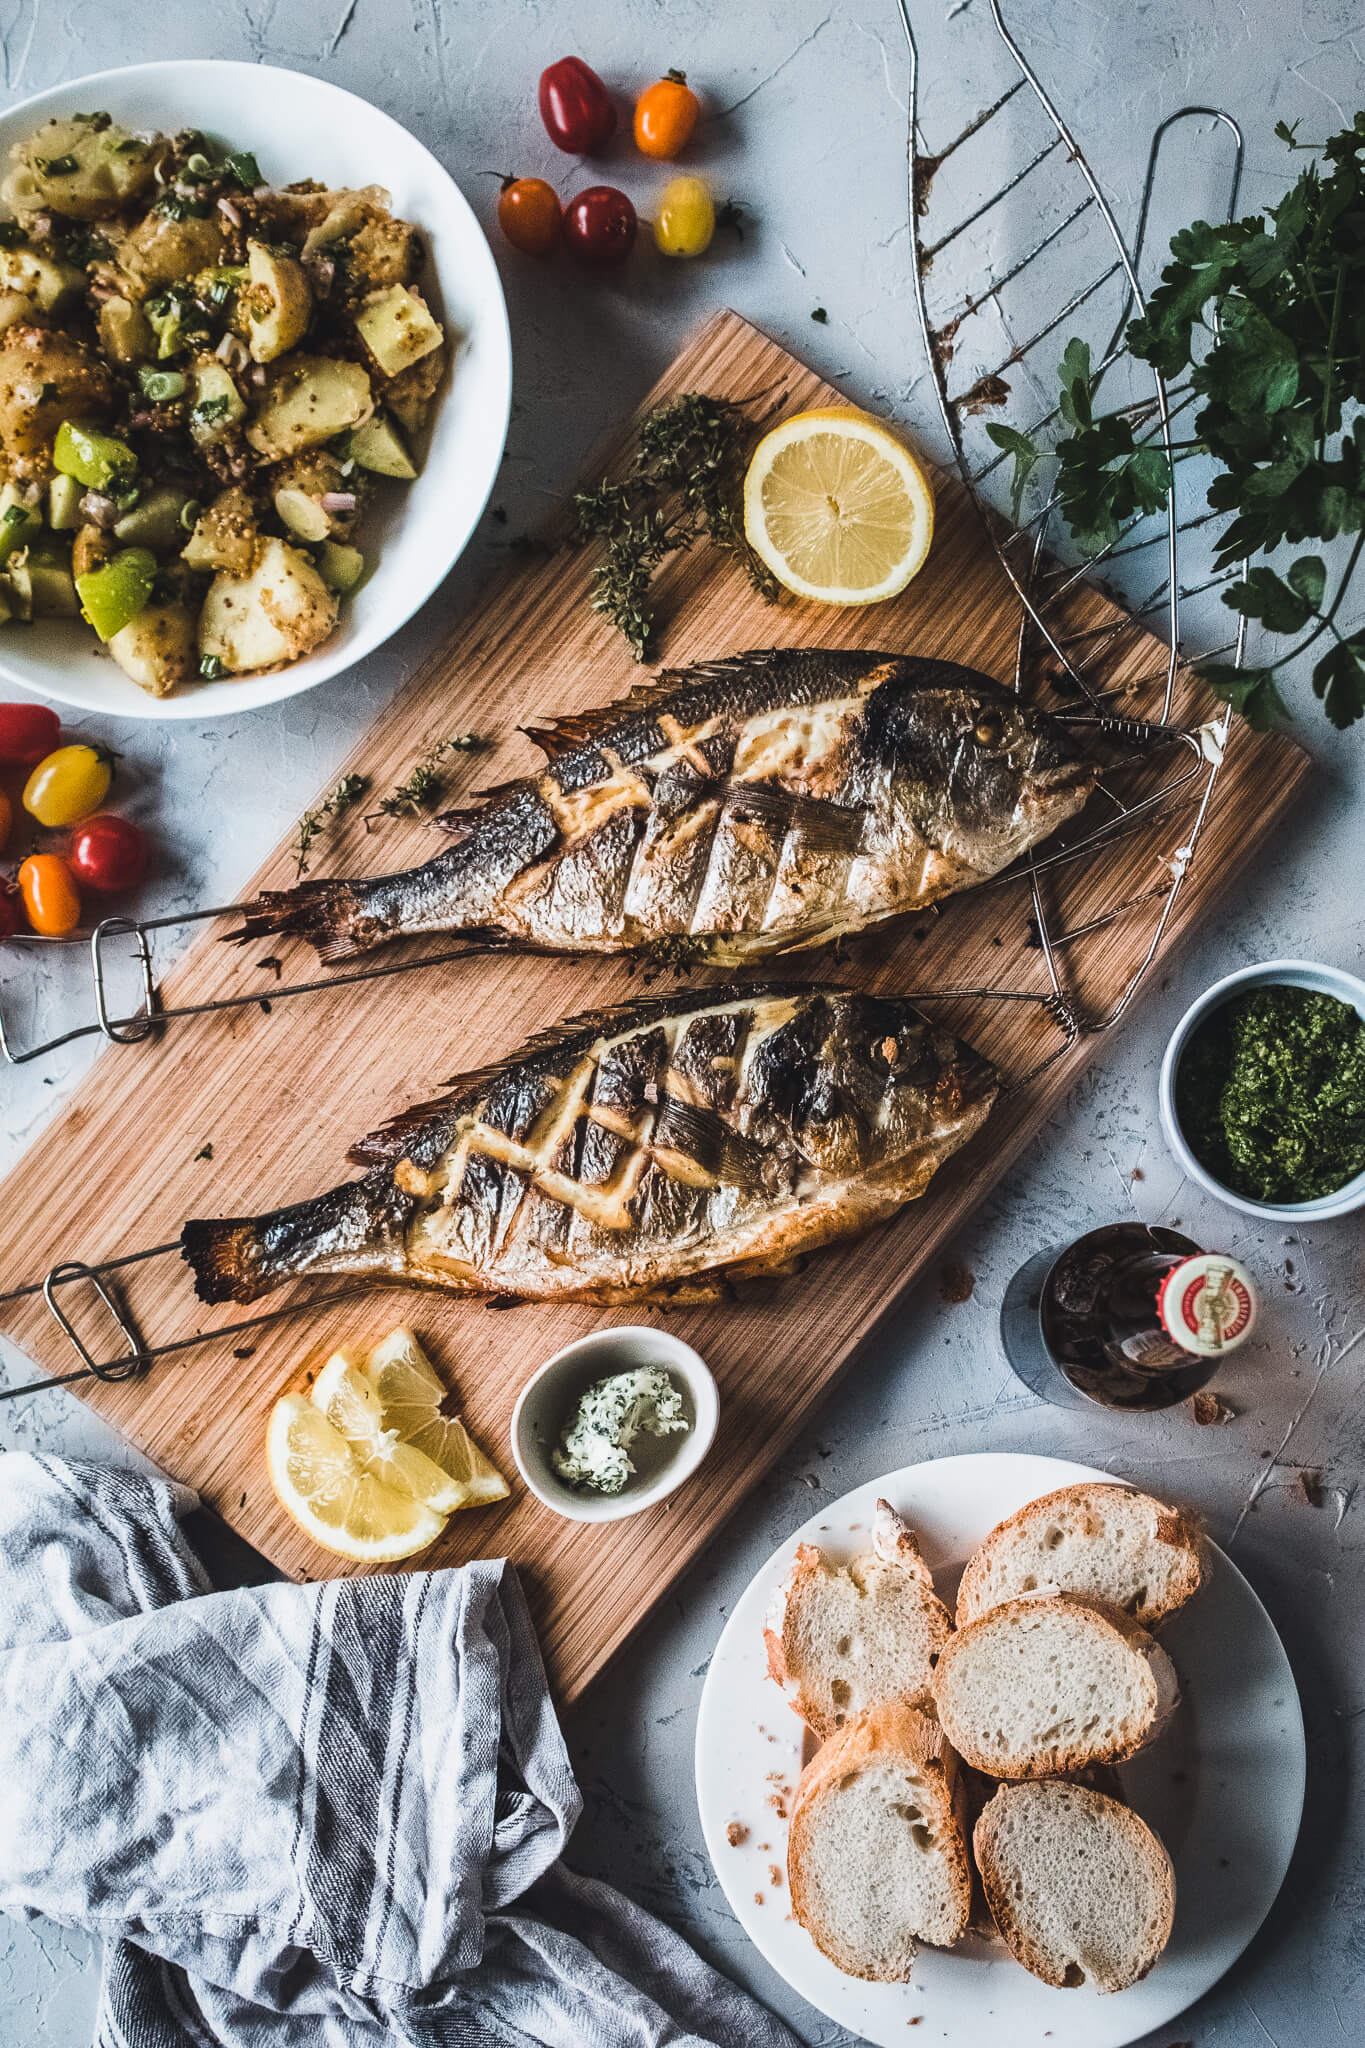 Grilled gilt-head bream with potato salad.